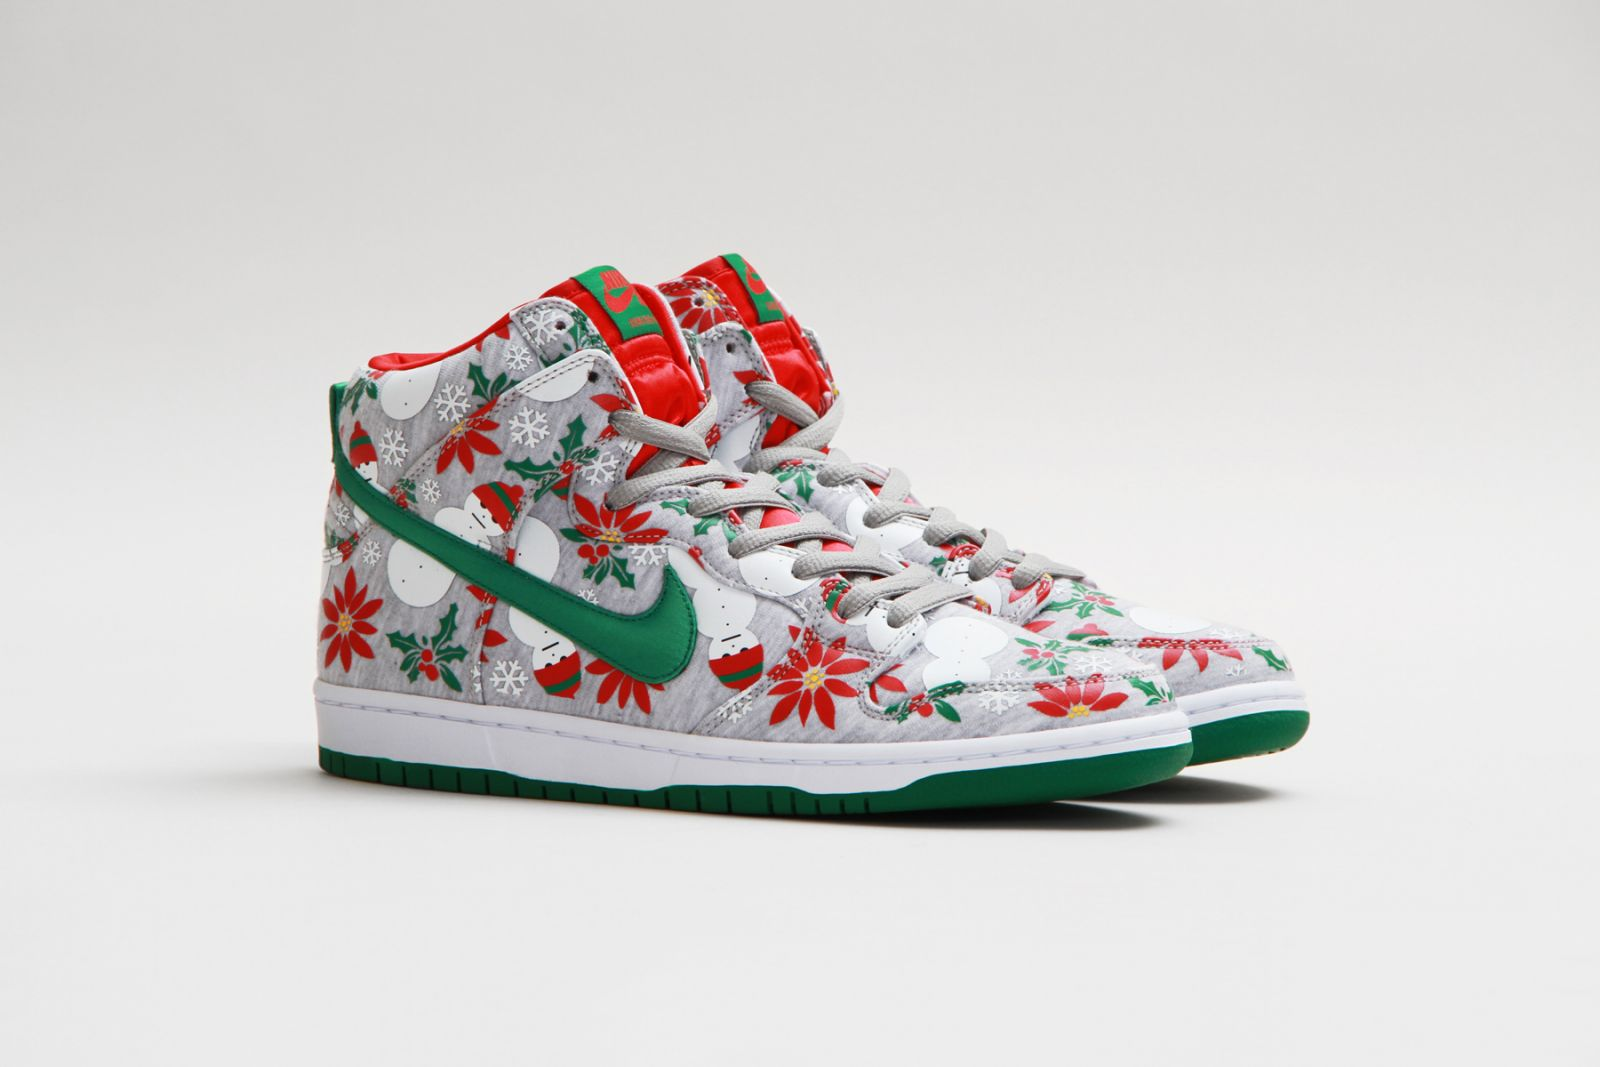 Concepts x Nike SB 'Ugly Christmas Sweater' Pack | Sole Collector